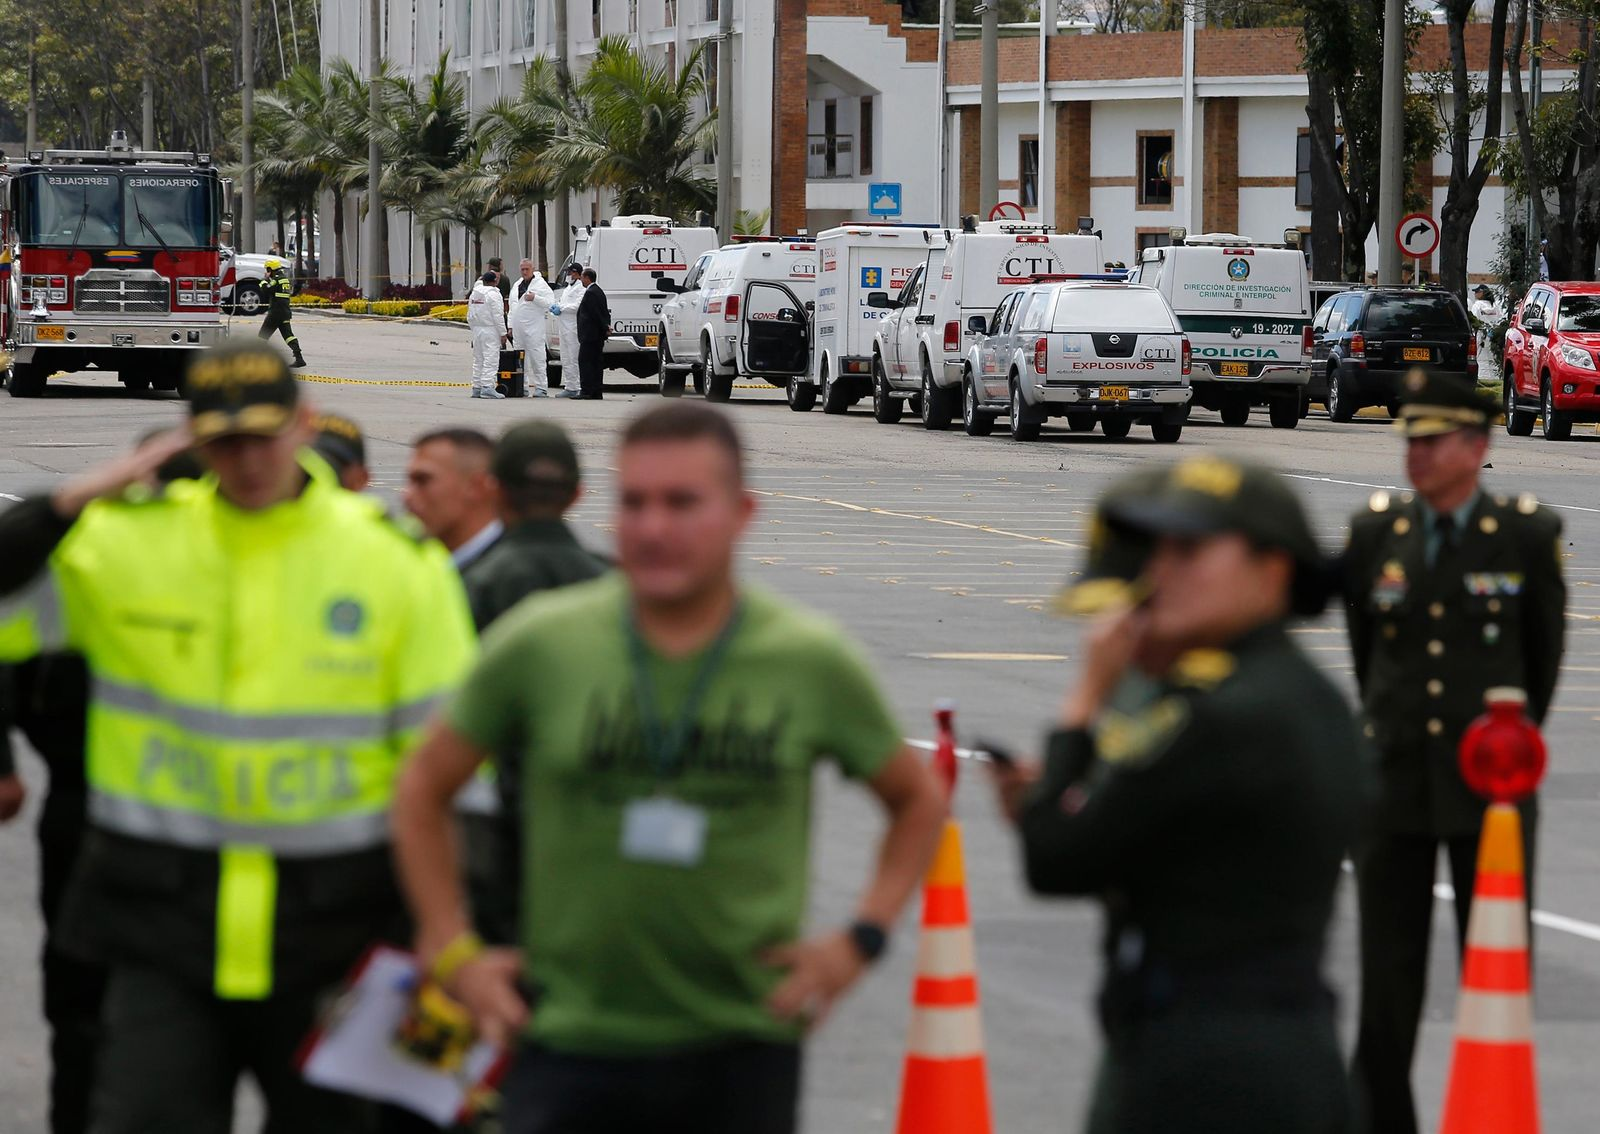 Forensic workers, behind top, work the scene of a deadly car bombing at the General Santander police academy in Bogota, Colombia, Thursday, Jan. 17, 2019. (AP Photo/John Wilson Vizcaino)